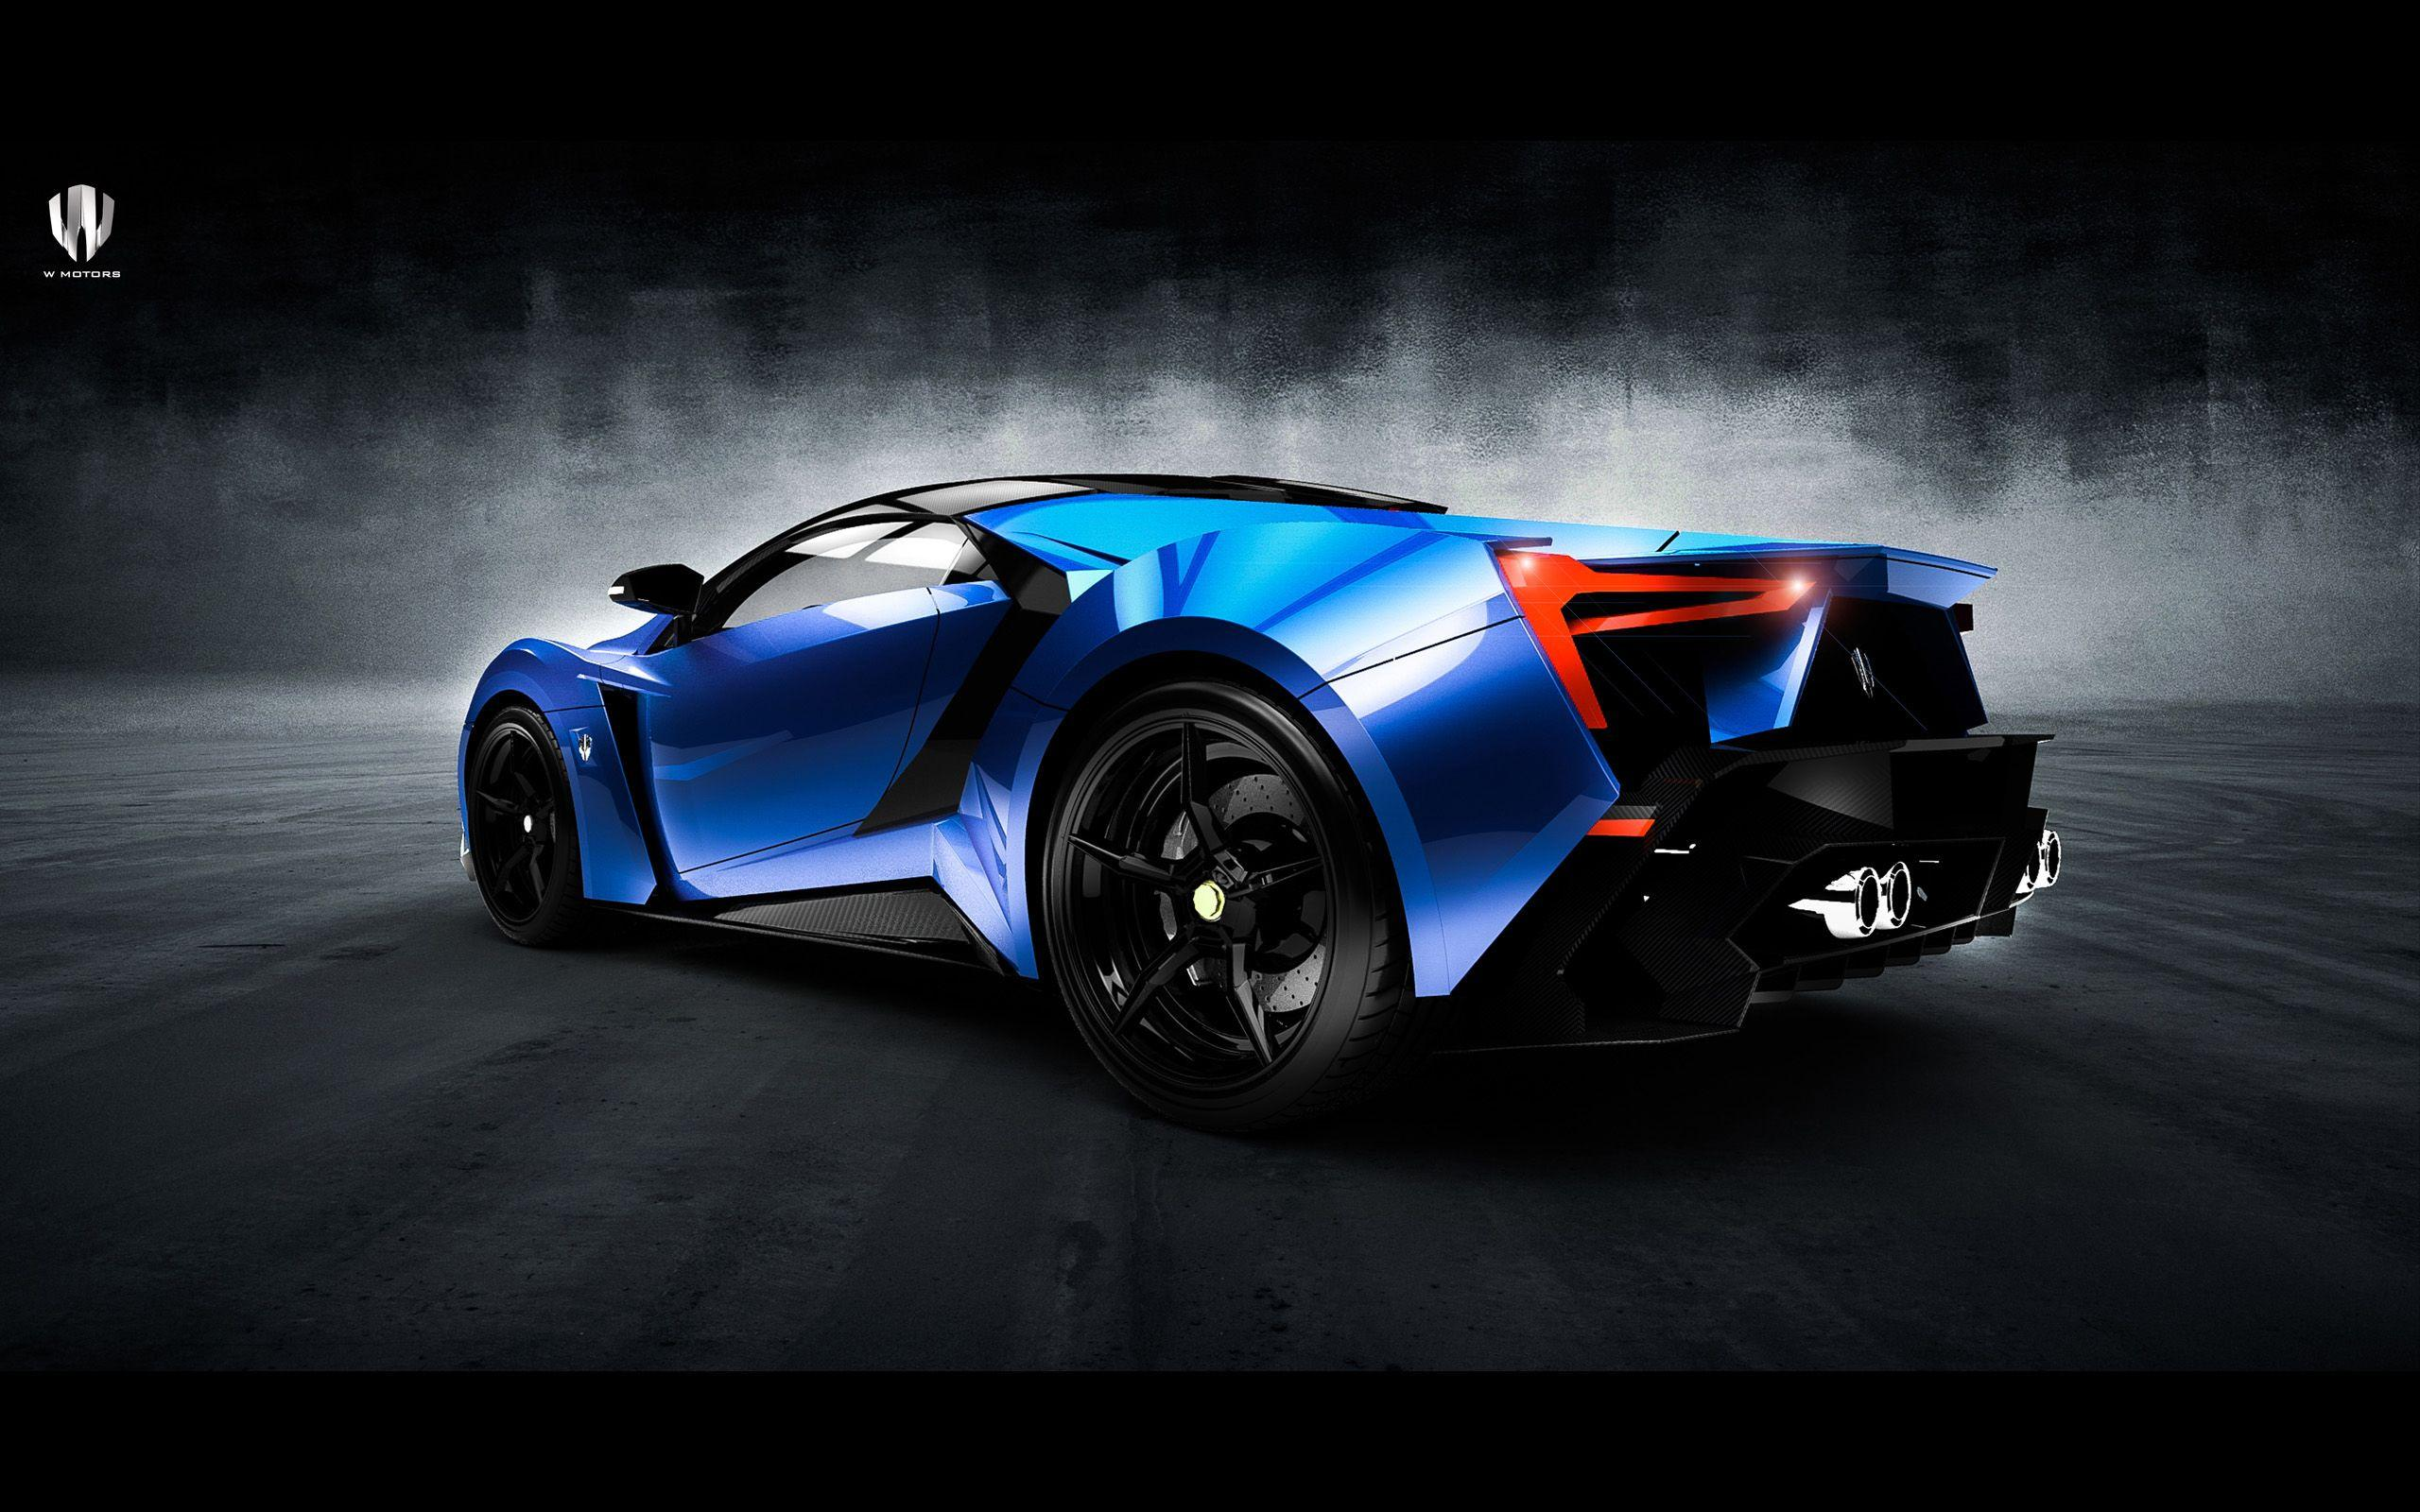 Lykan Hypersport Car >> Lykan Hypersport Wallpapers - Wallpaper Cave